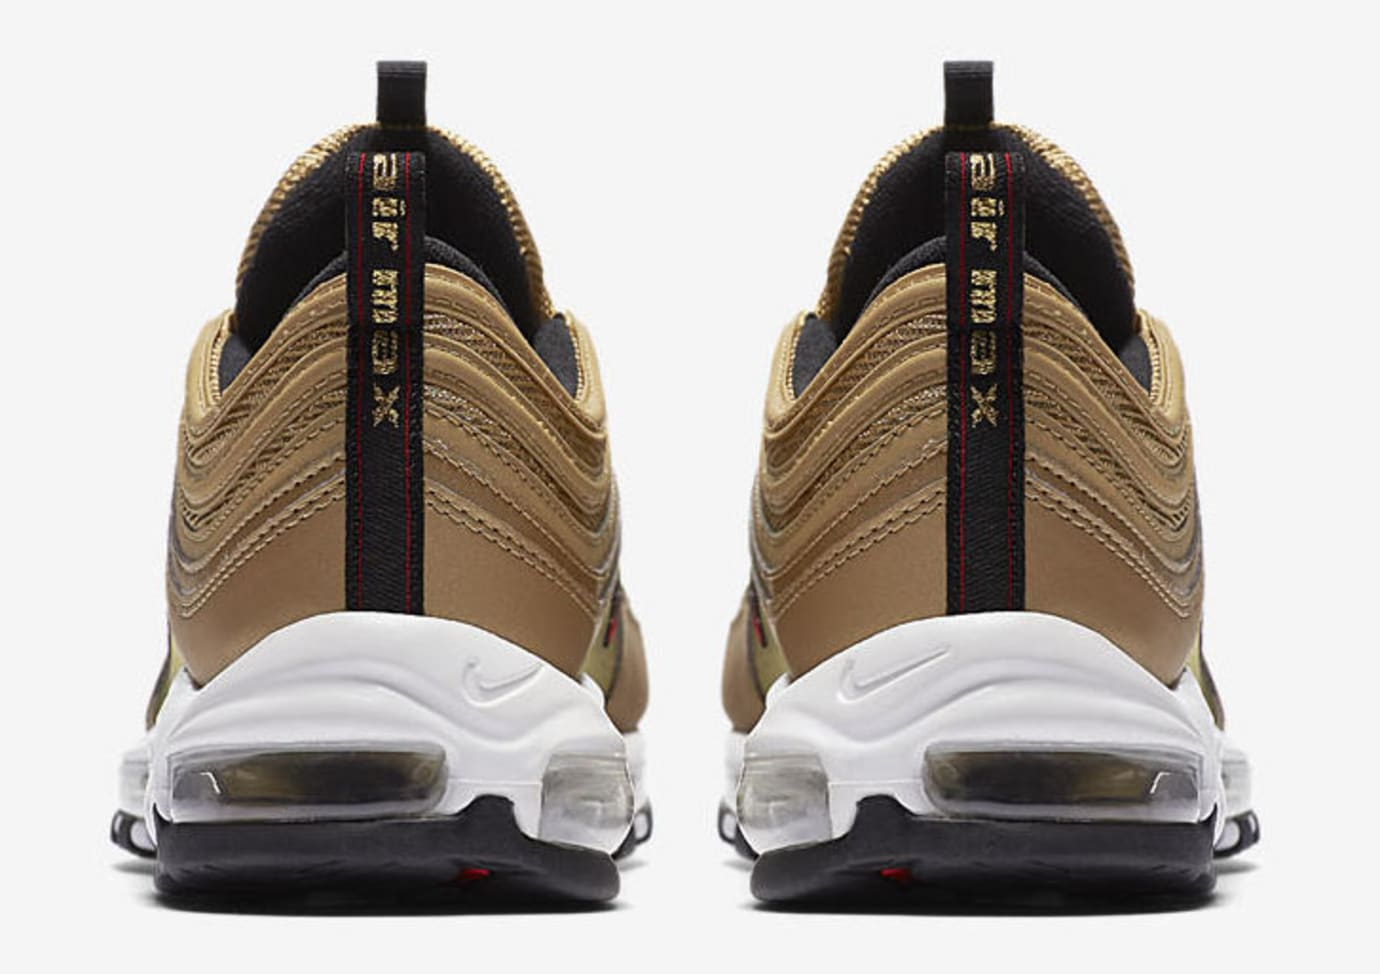 62c12b06 Nike Air Max 97 OG 'Metallic Gold' 884421-700 Release Date 2018 ...